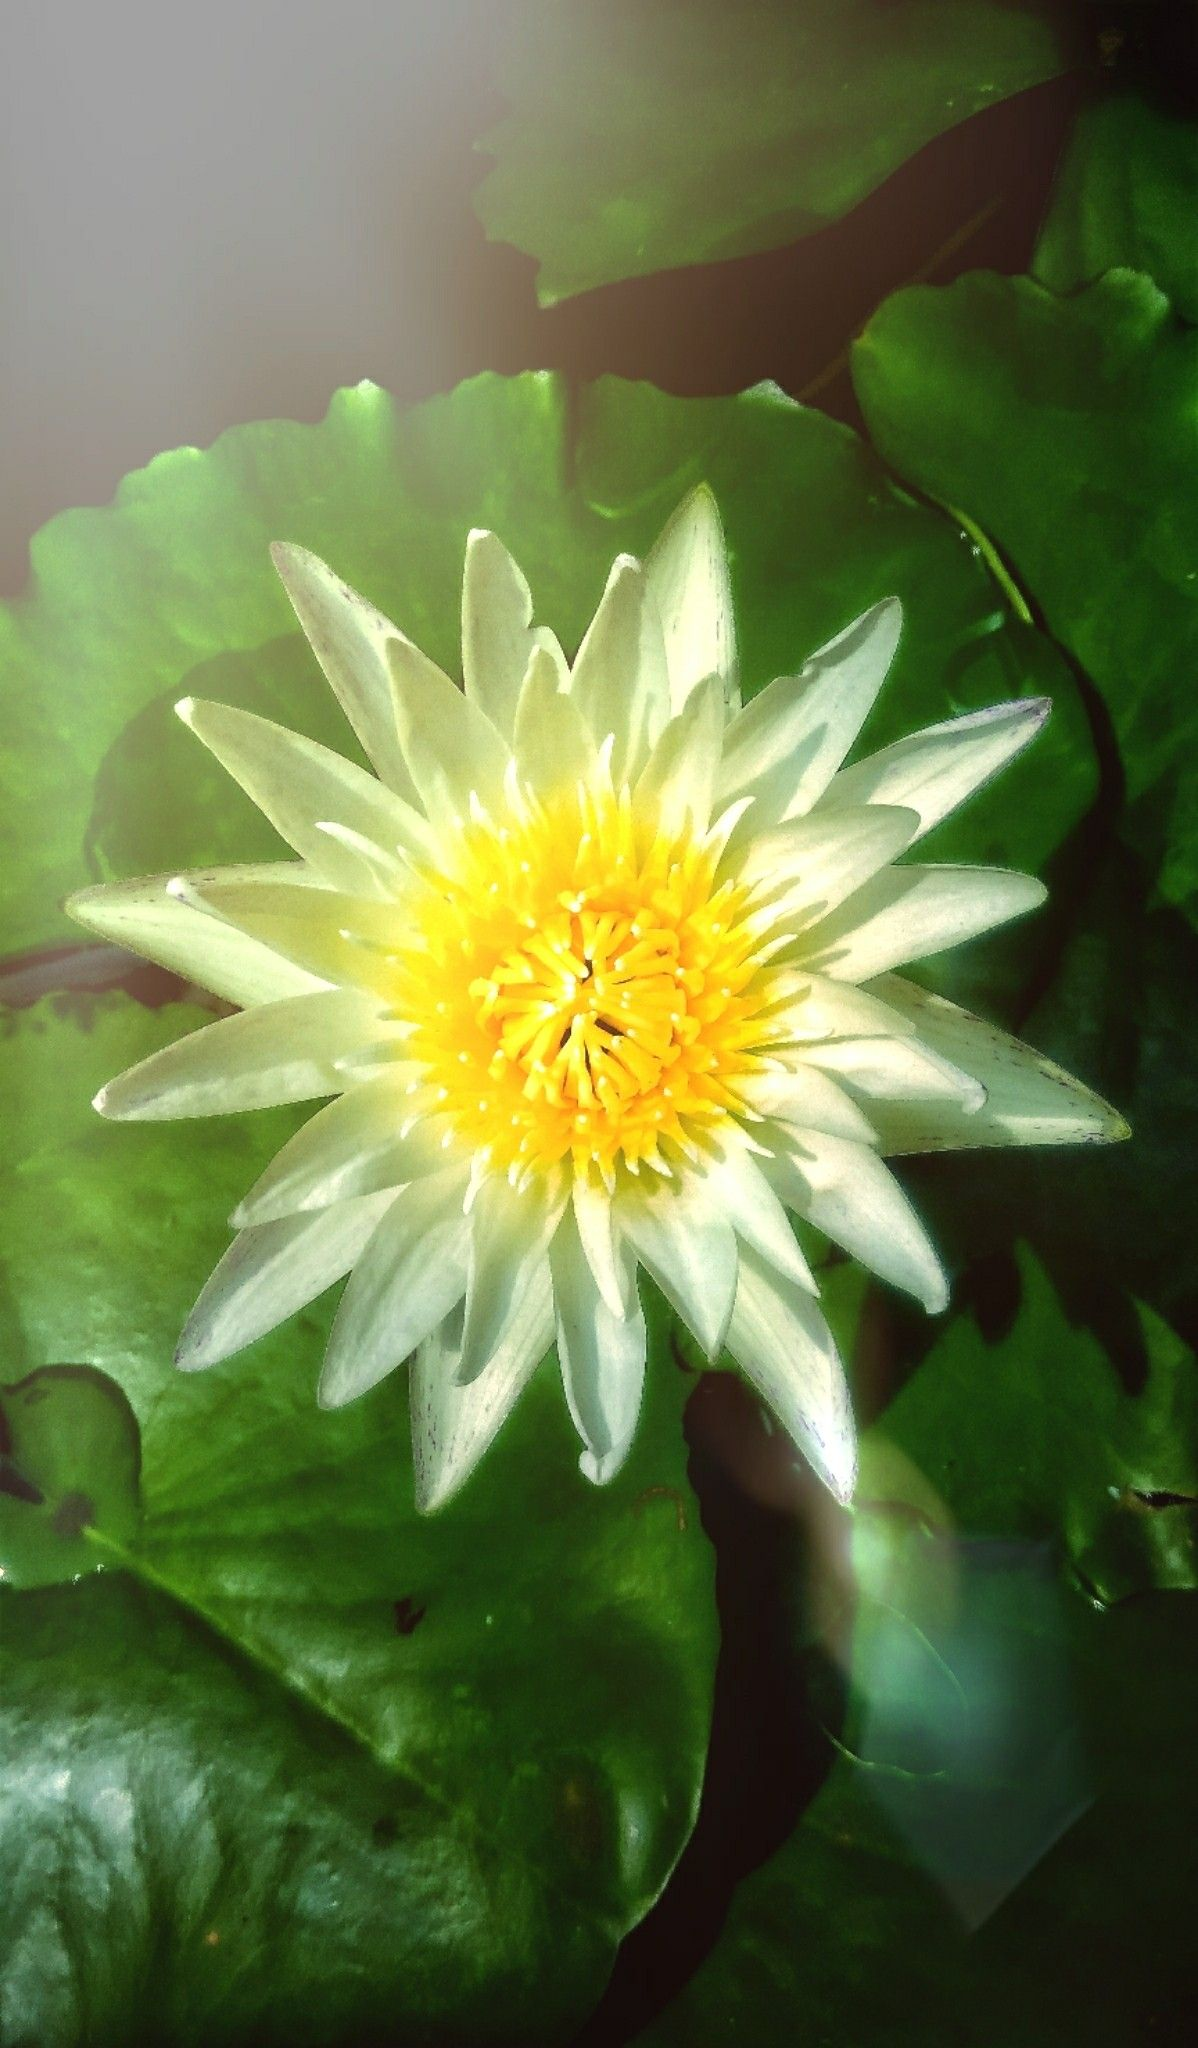 Beautiful white lotus flower in the flower garden behind the house beautiful white lotus flower in the flower garden behind the house izmirmasajfo Image collections